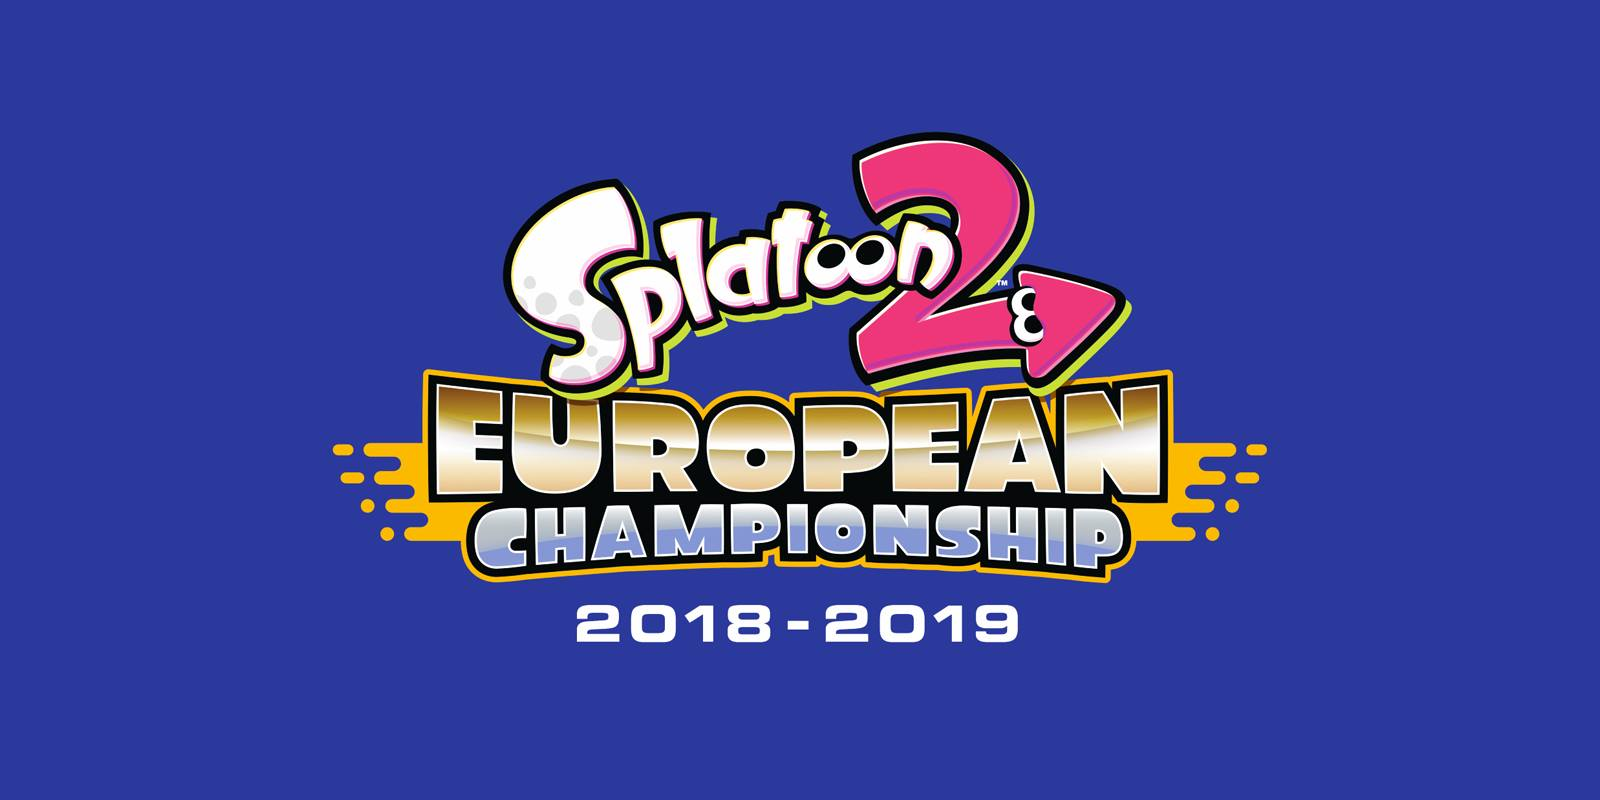 Al via quest'oggi lo Splatoon 2 European Championship 2019